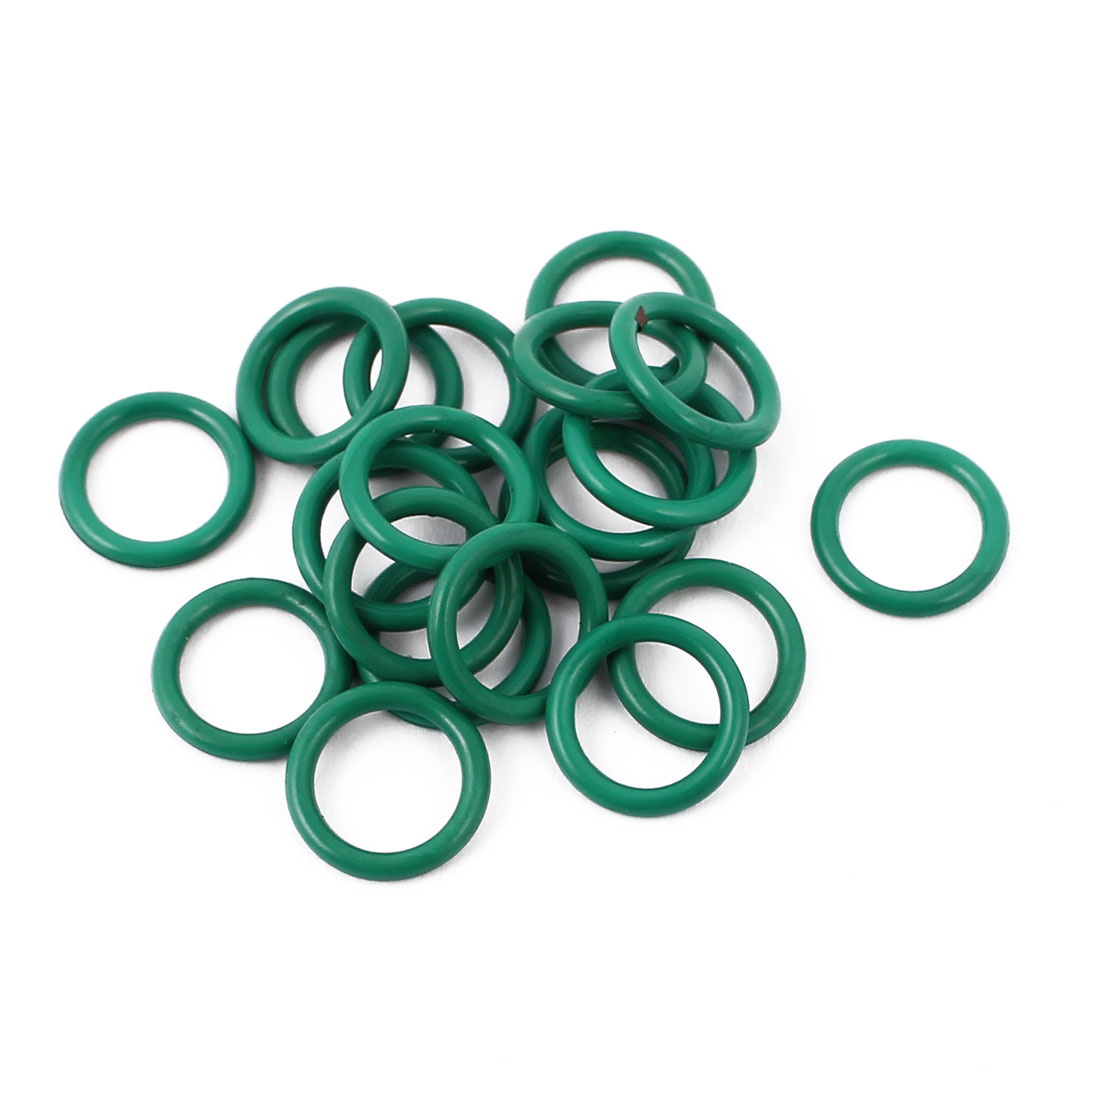 20 Pcs 10.5 x 1.5mm Oilproof NBR Nitrile Rubber O Sealing Ring Nonpoisonus Green